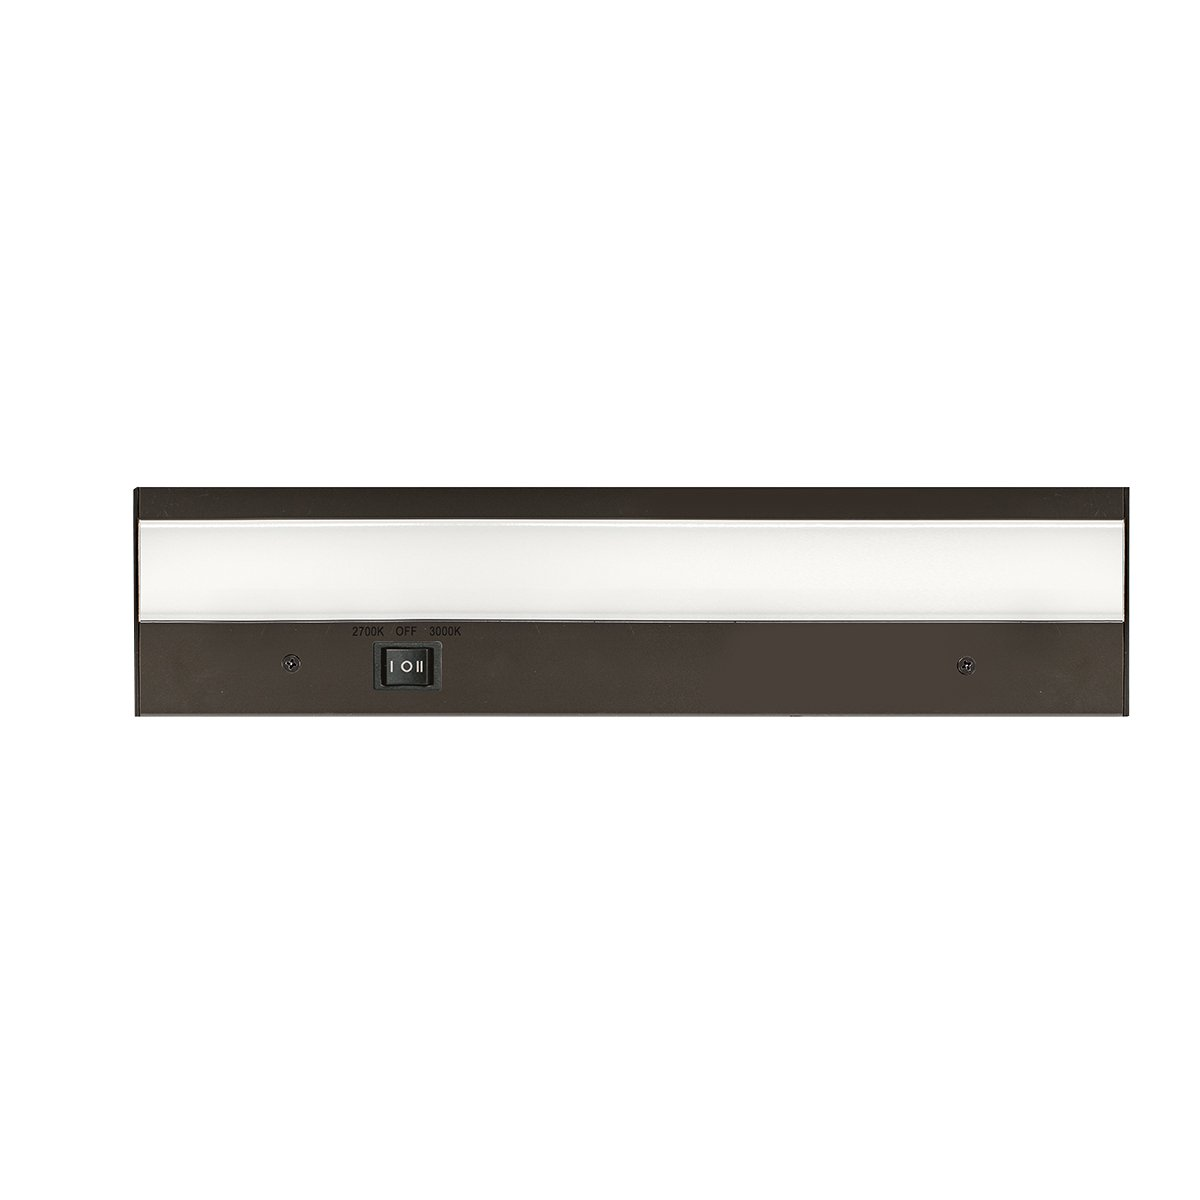 WAC Lighting BA-ACLED12-27/30BZ Duo Acled Dual Color Option Bar Finish 2700K and 3000K, 12 Inches, Bronze